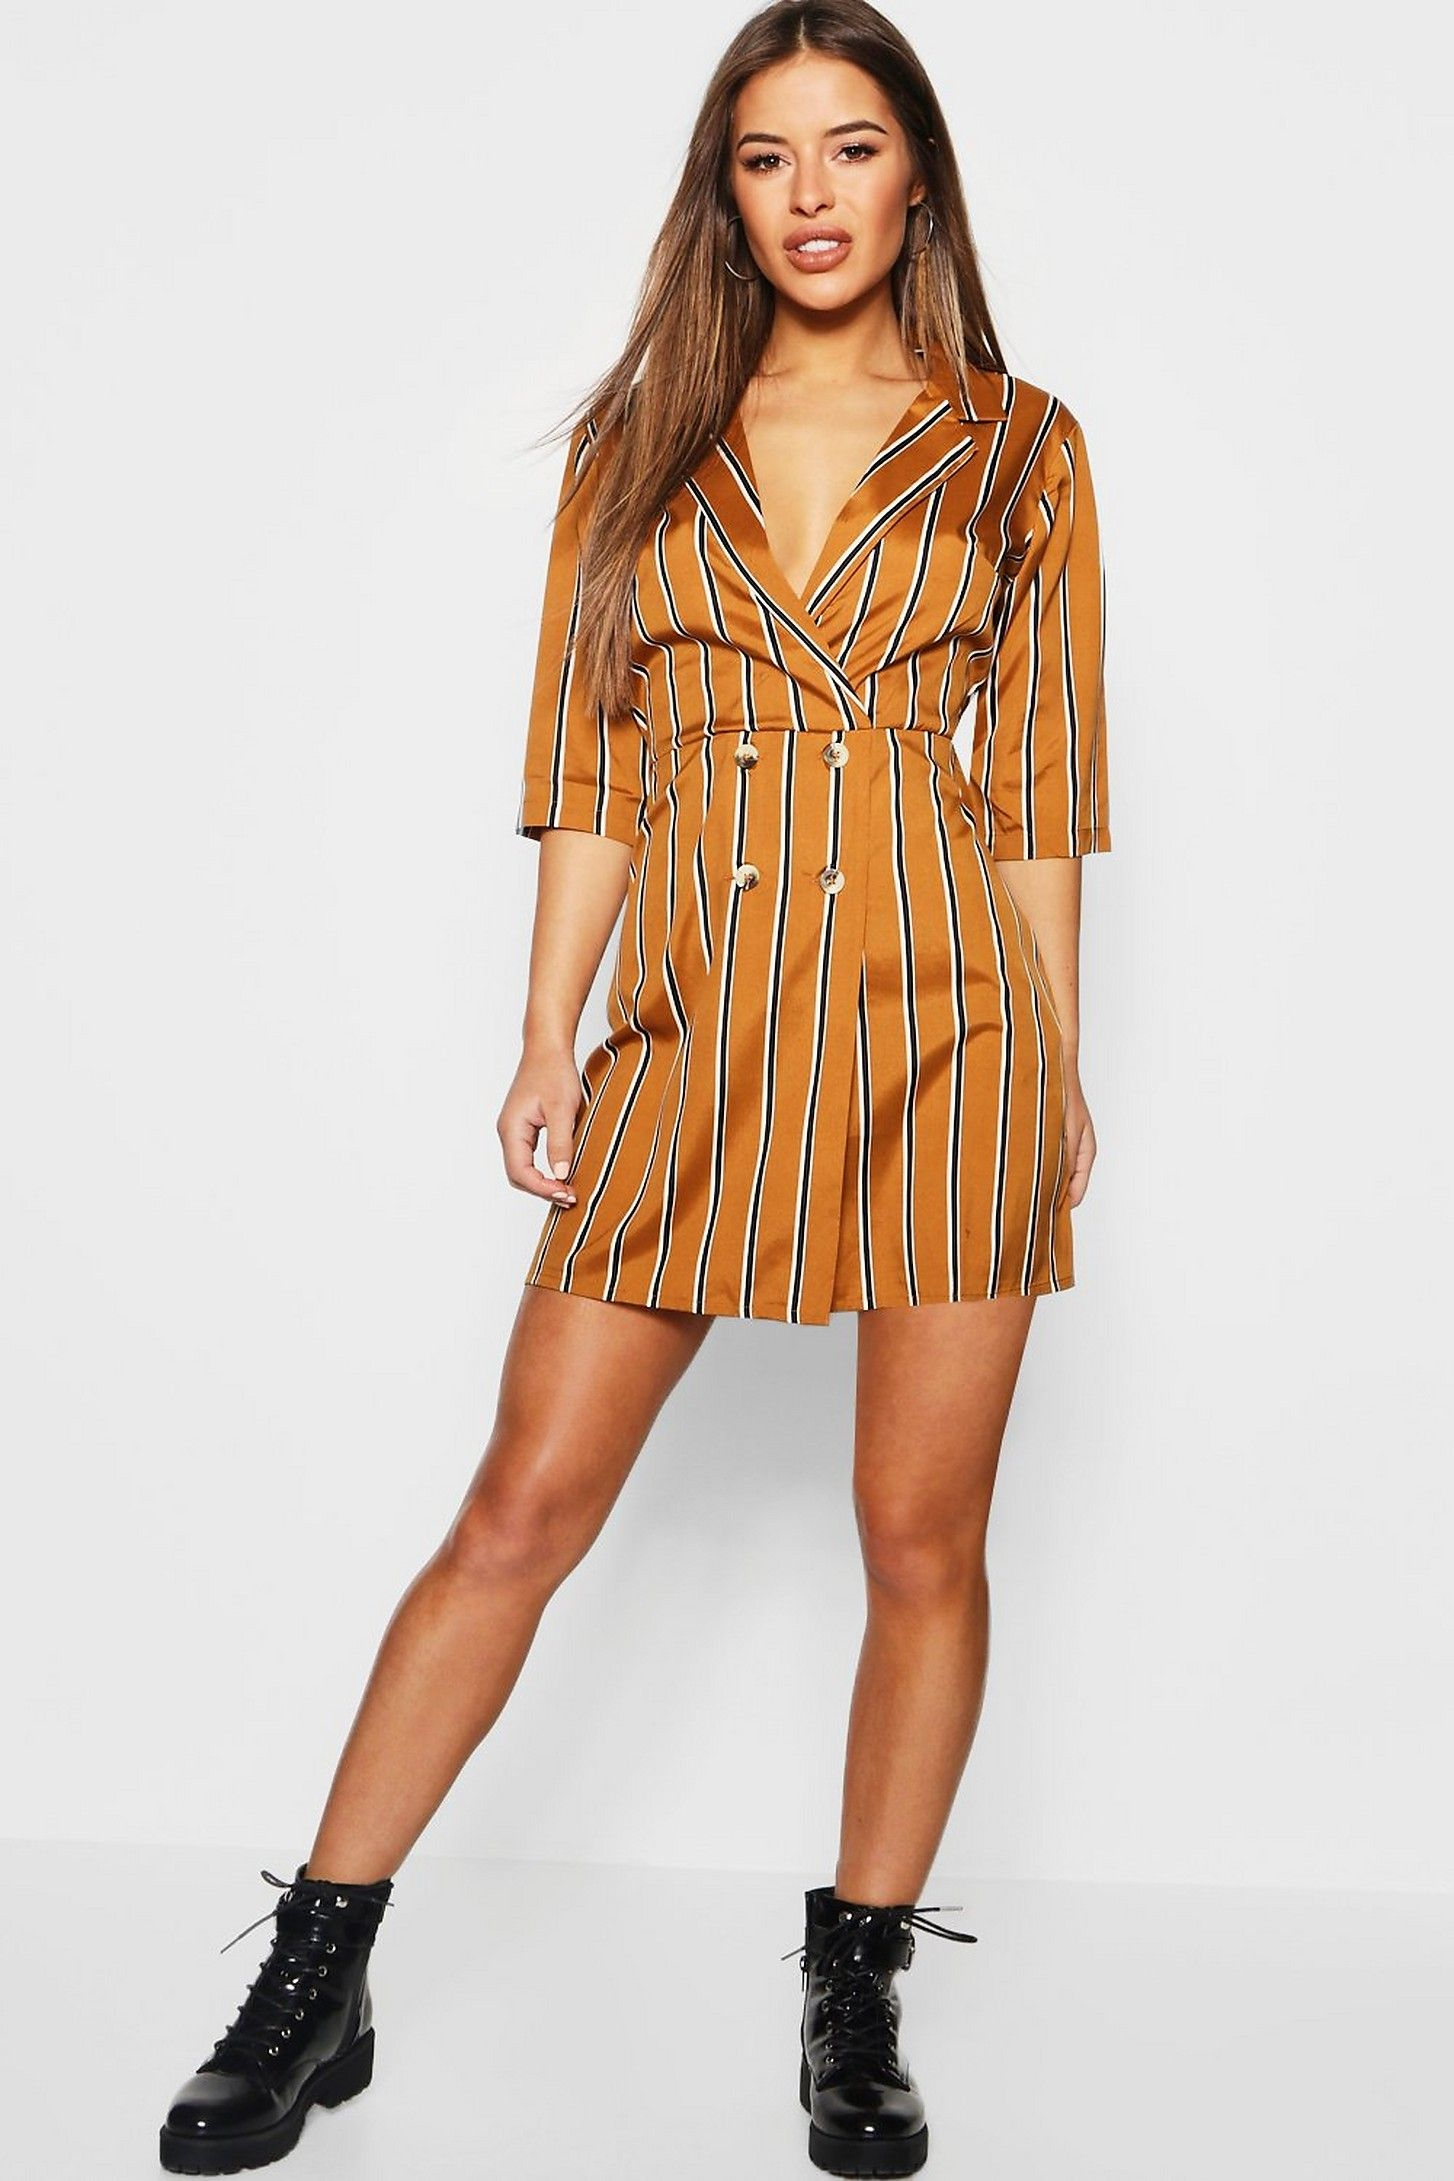 4c60ef1cb05e Petite Button Detail Striped Dress in 2019 | #NayDay gifts | Dresses ...